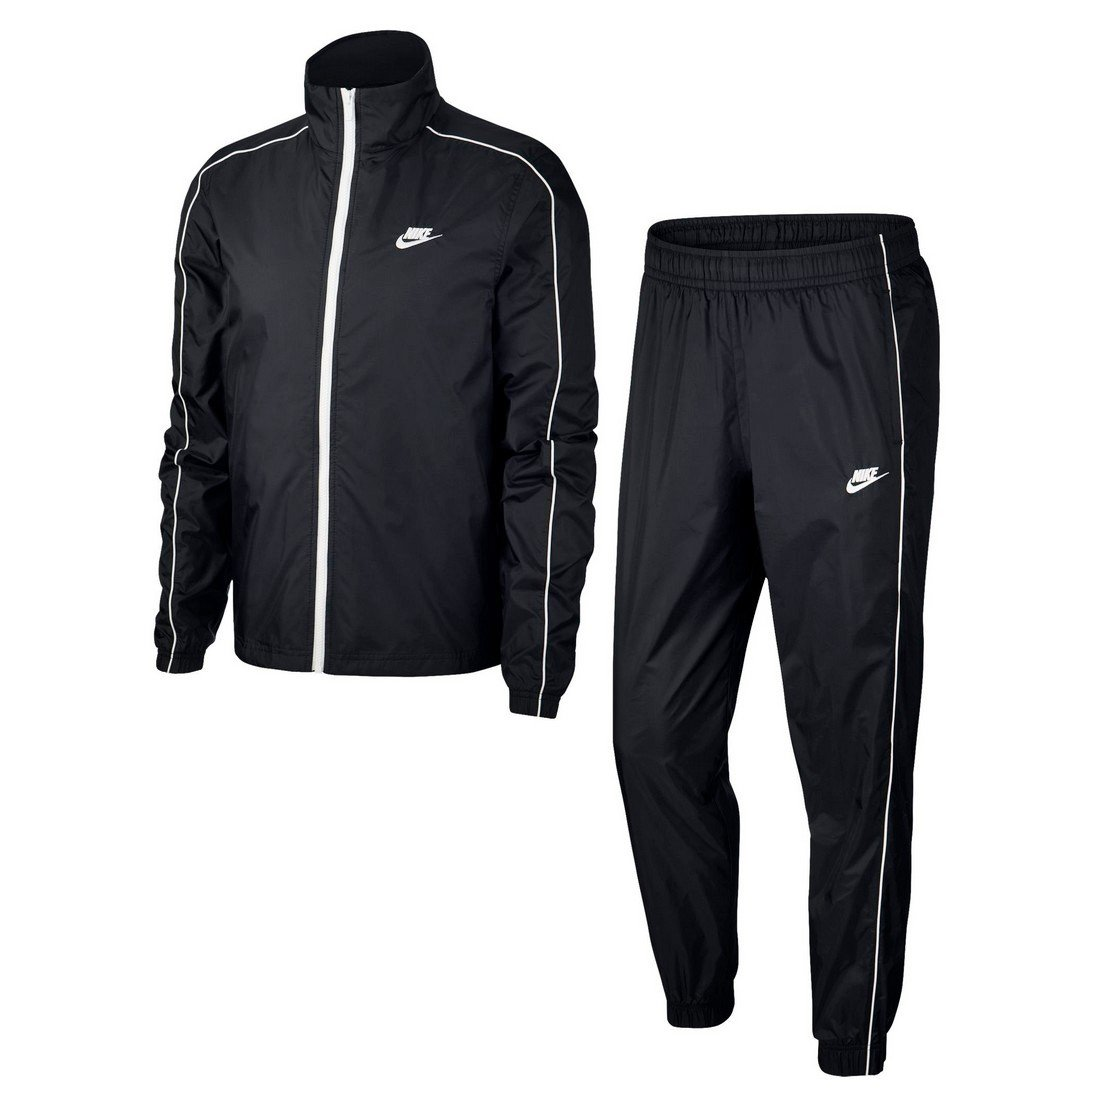 Agasalho Nike TRACK Suit Woven Preto